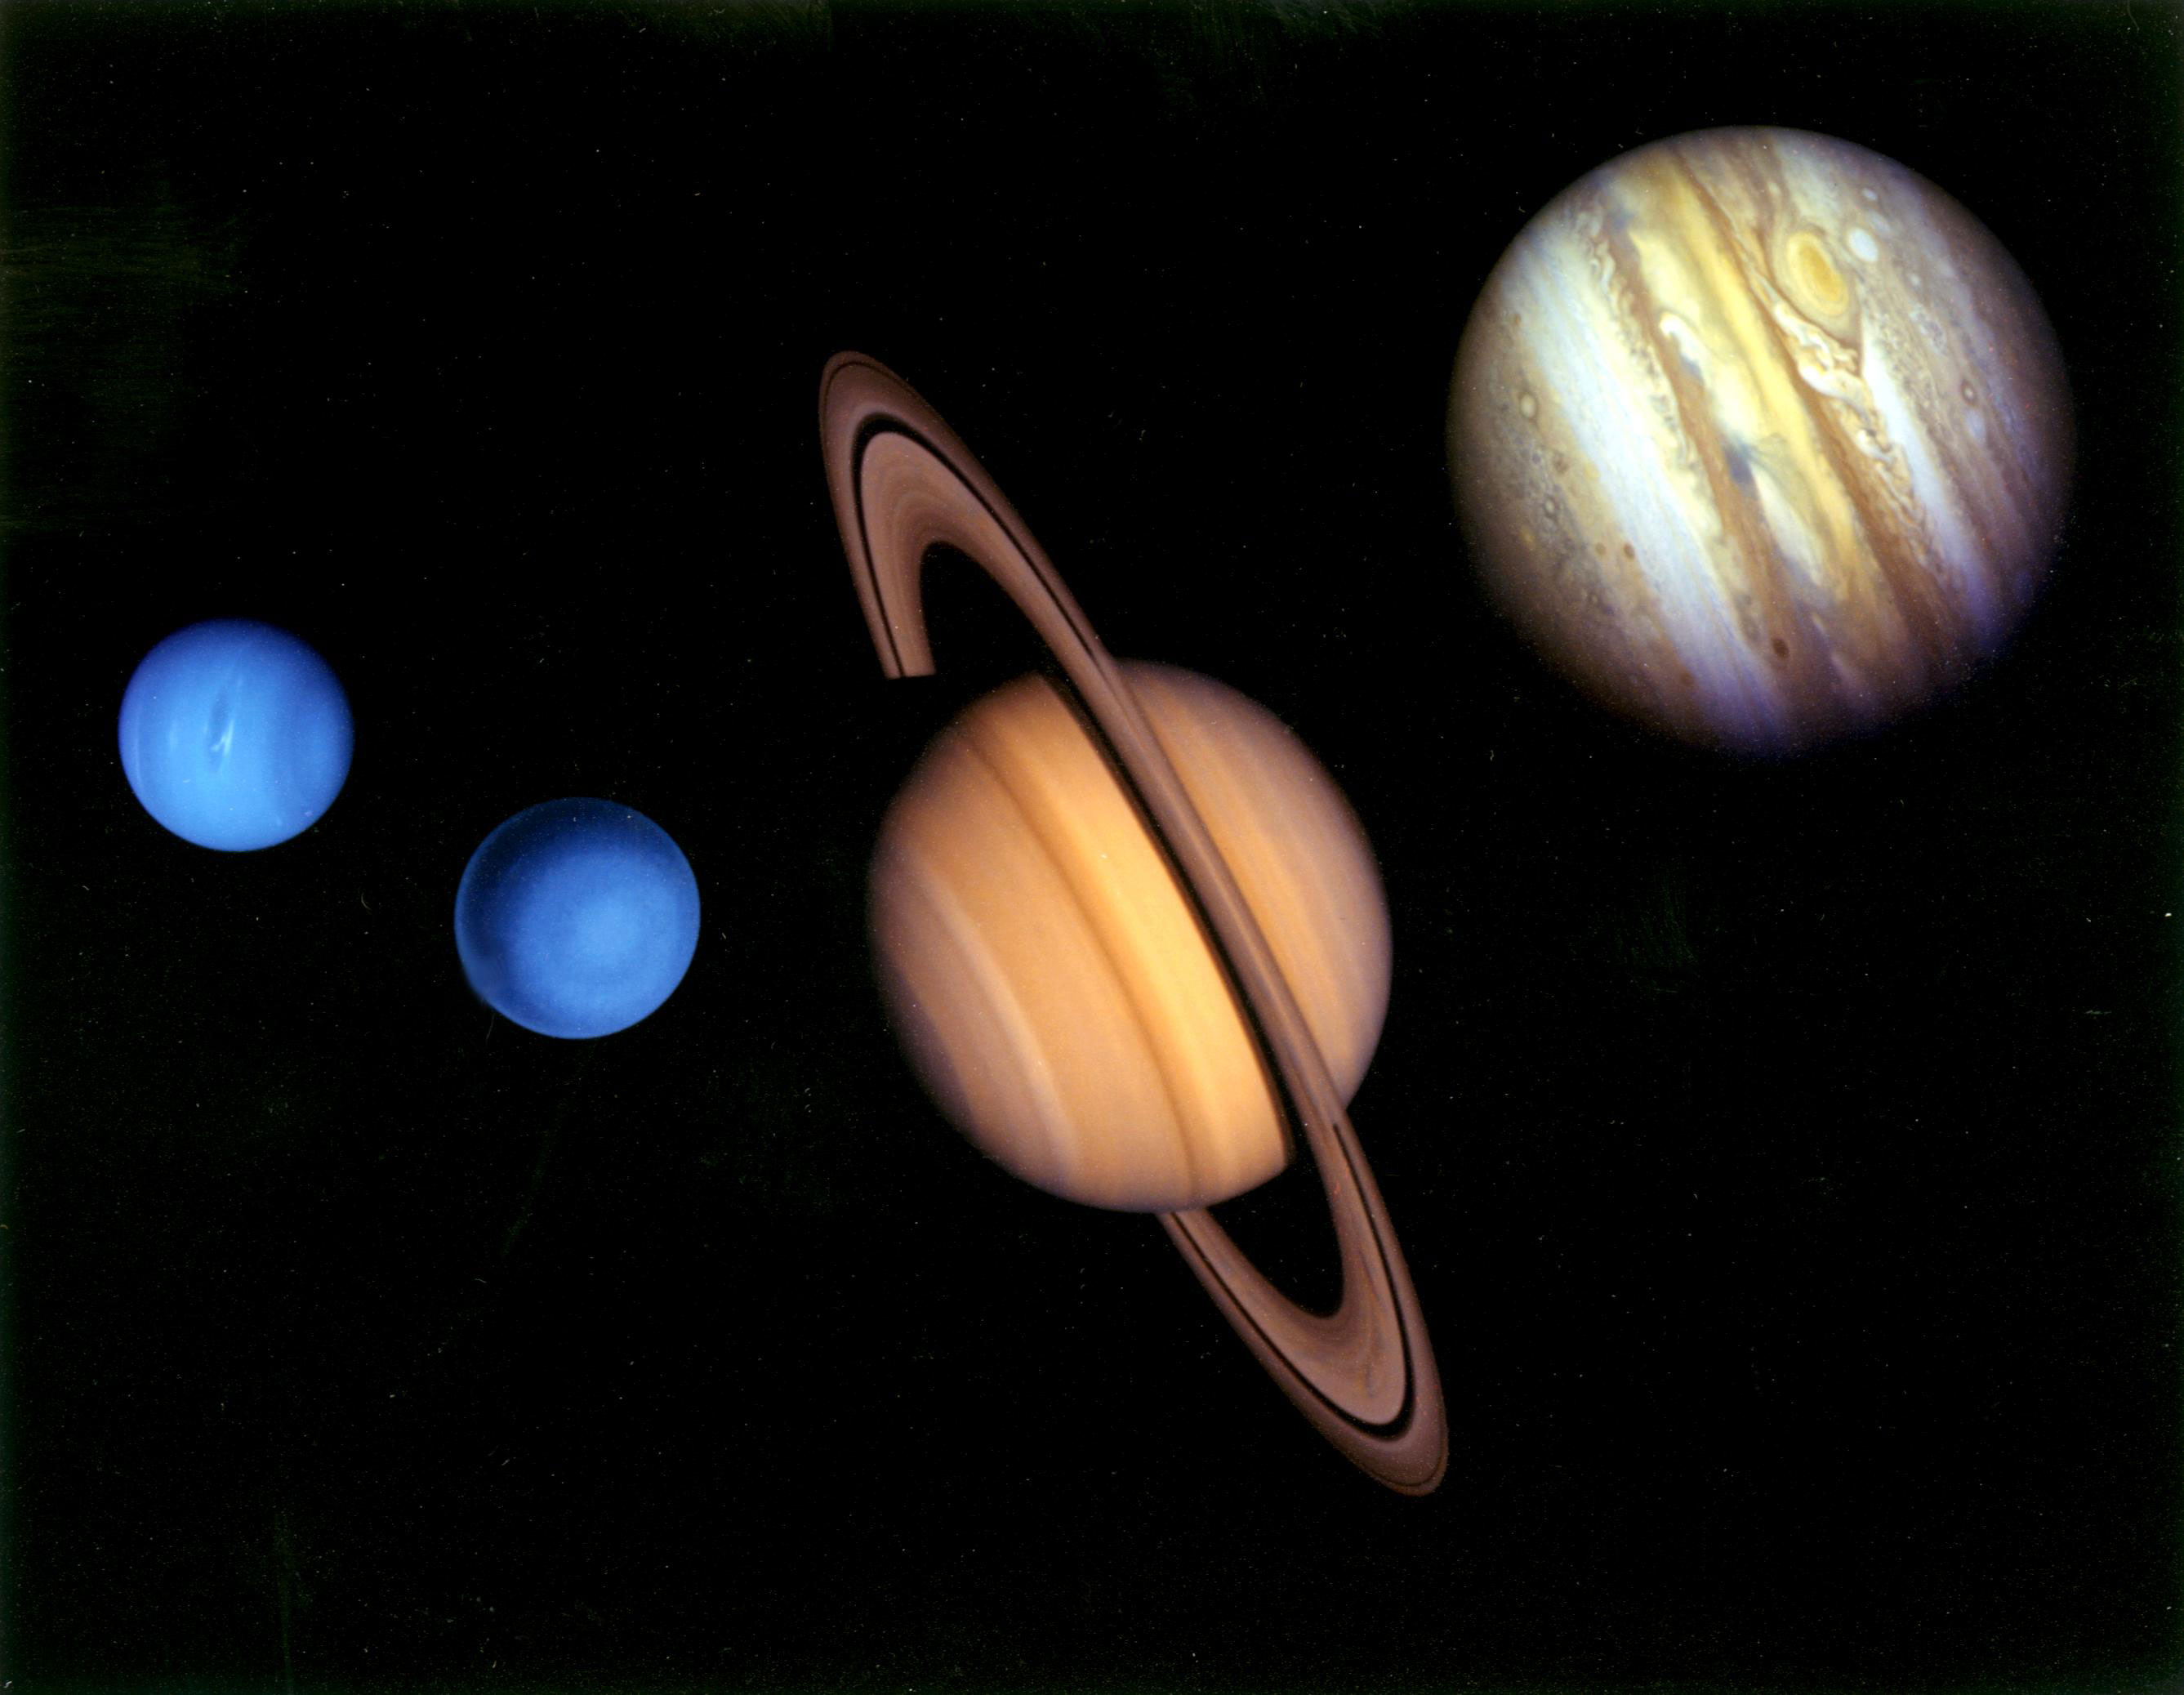 Major Accomplishments of NASA's Voyager 1 and 2 Spacecraft